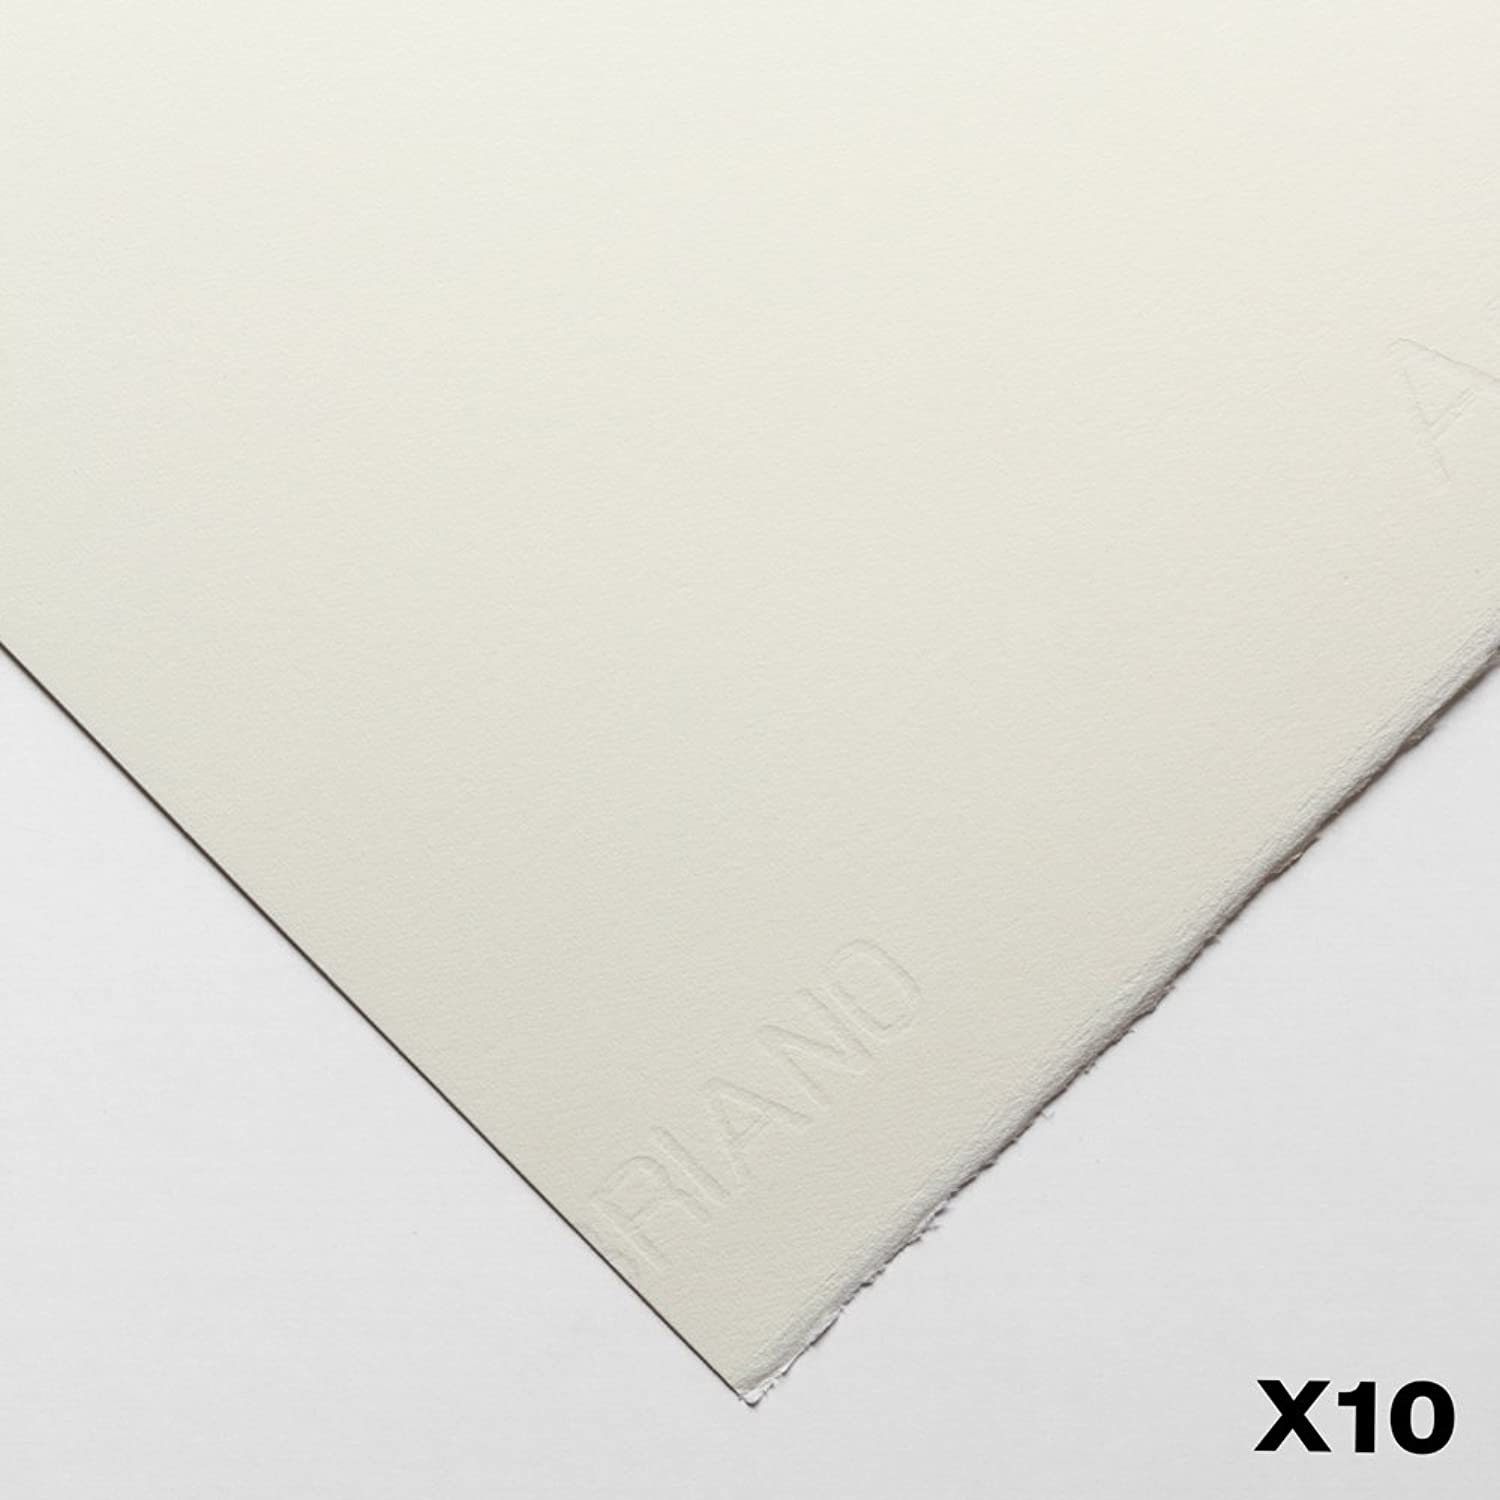 Fabriano   Artistico   300gsm 300gsm 300gsm   22x30in   10 Sheets   Traditional   HP B074TD4V85 | Deutschland München  a12bc4